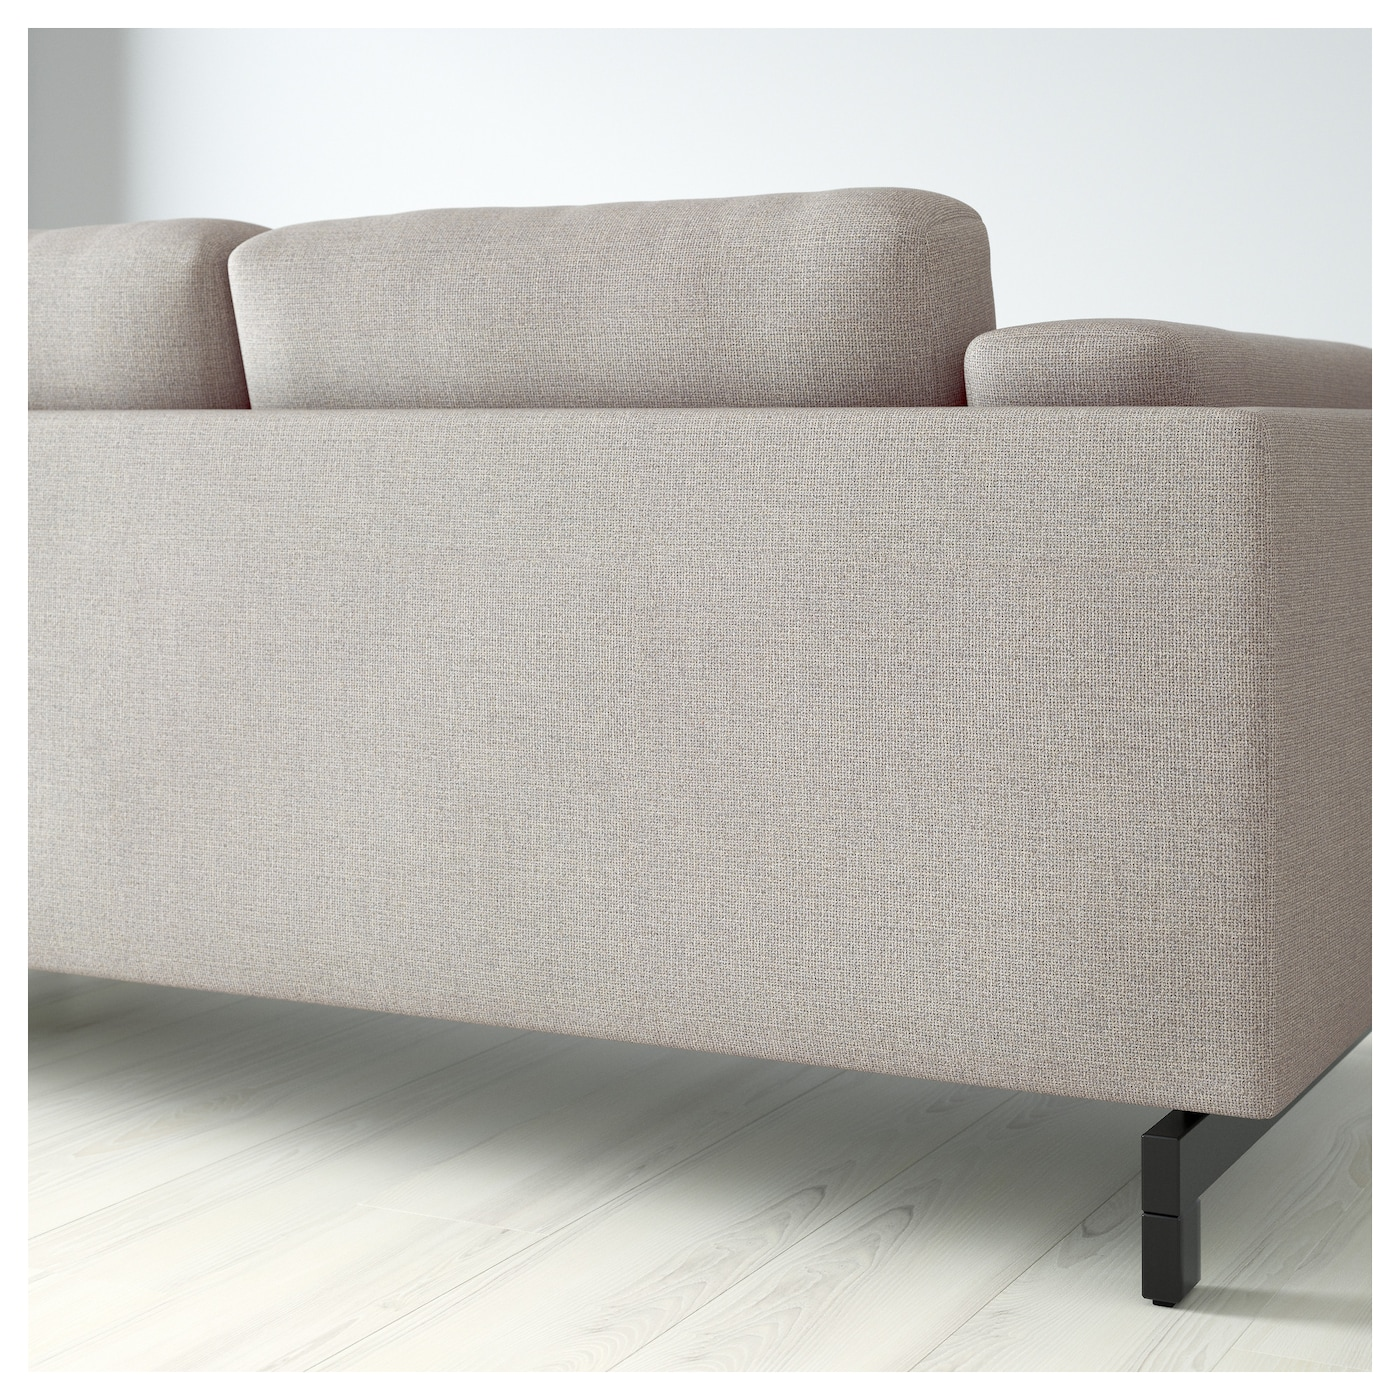 NOCKEBY 3 seat sofa With chaise longue left tenö light grey wood